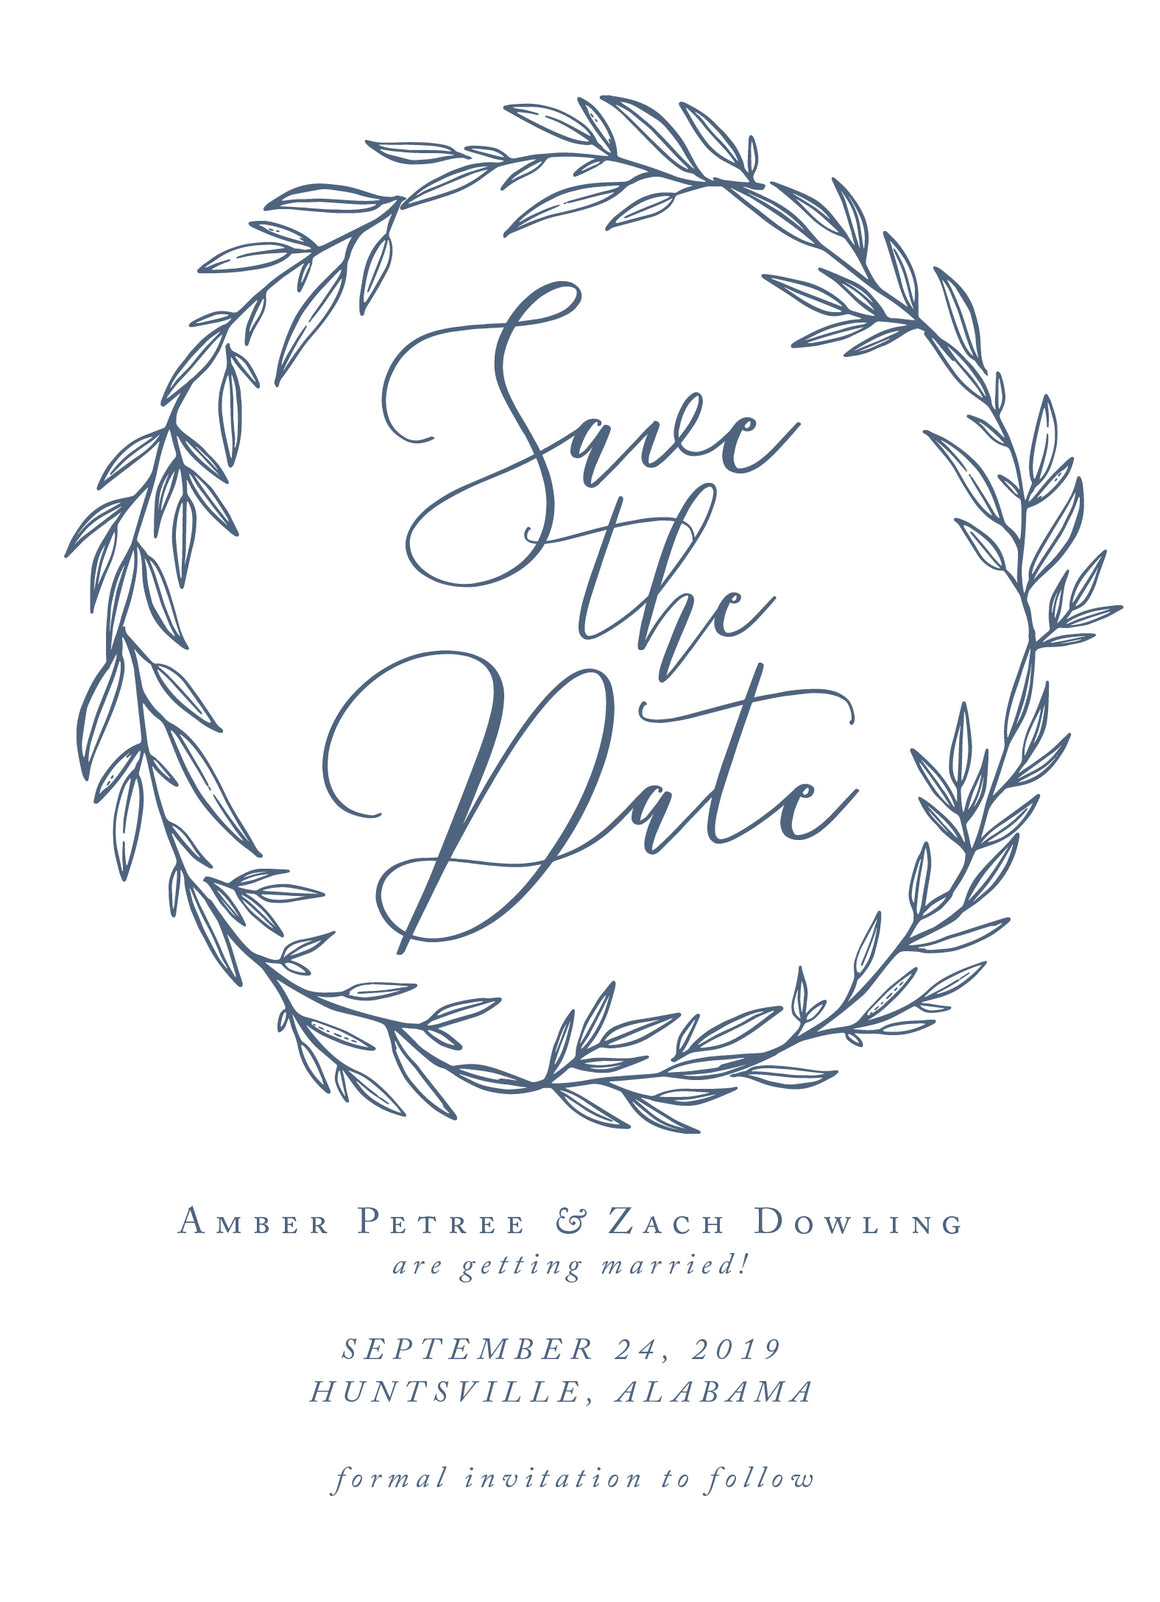 Amber Save the Date